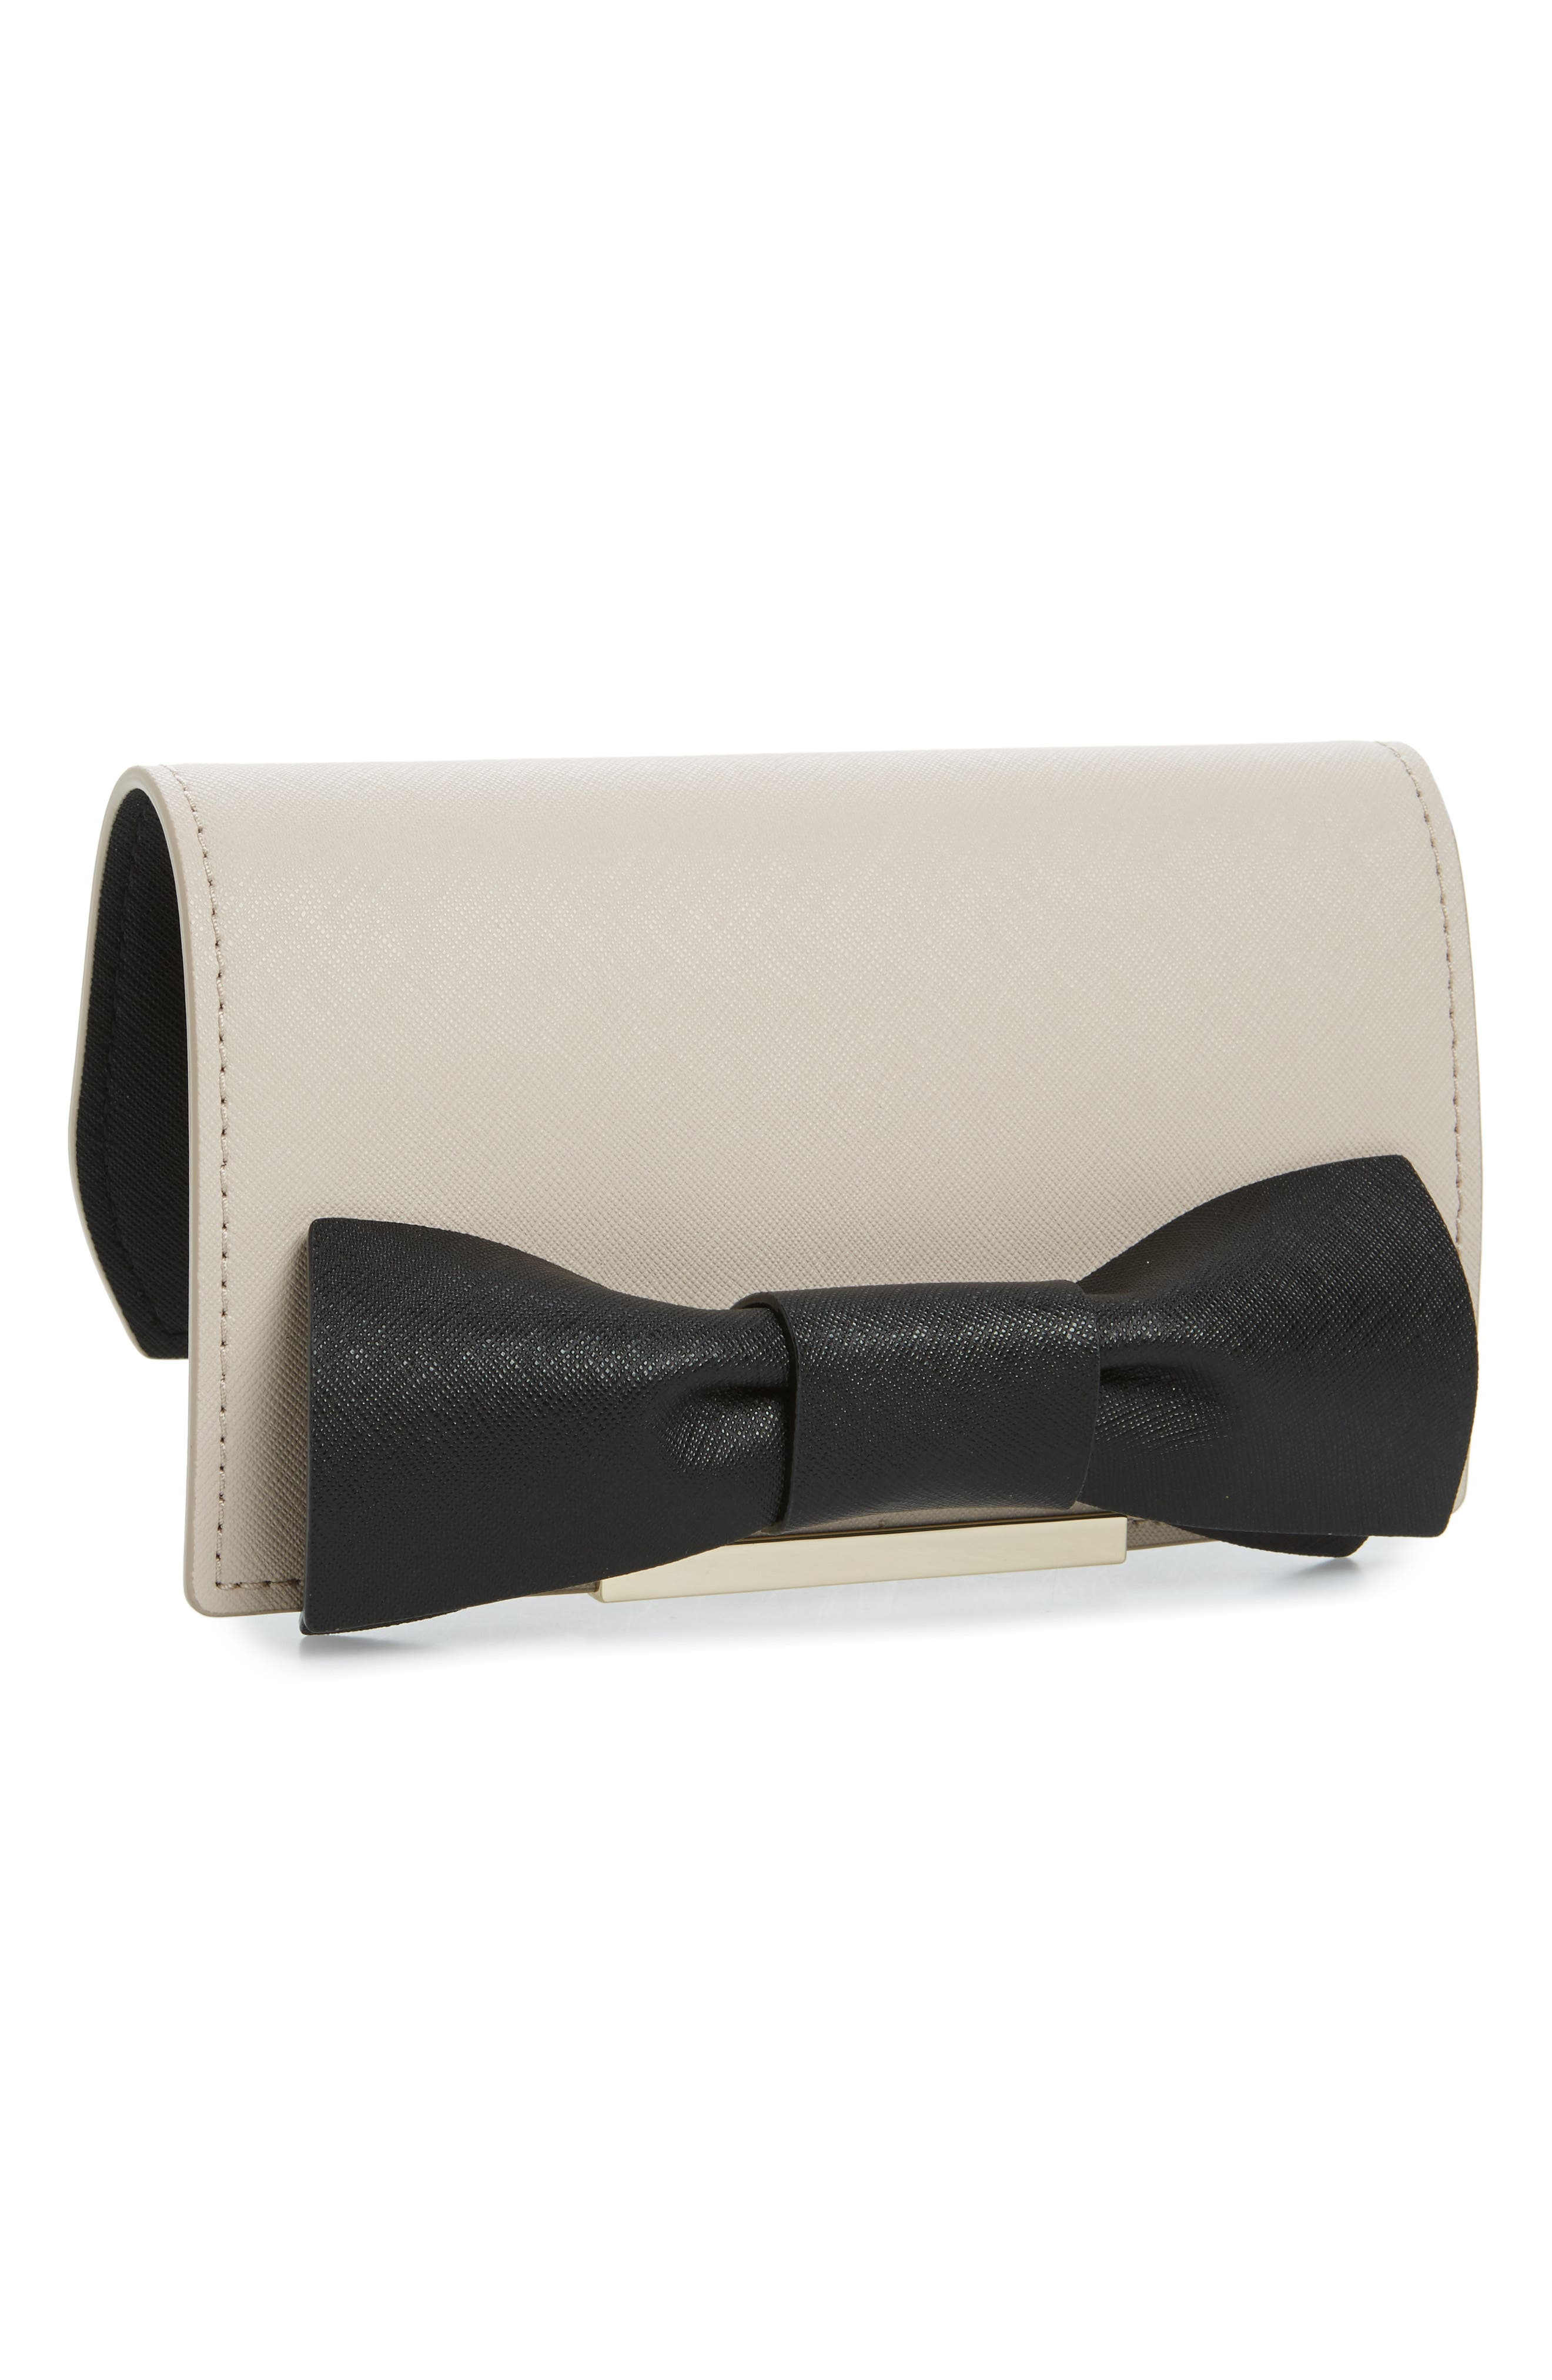 make it mine bow leather snap-on accent flap,                         Main,                         color, 900